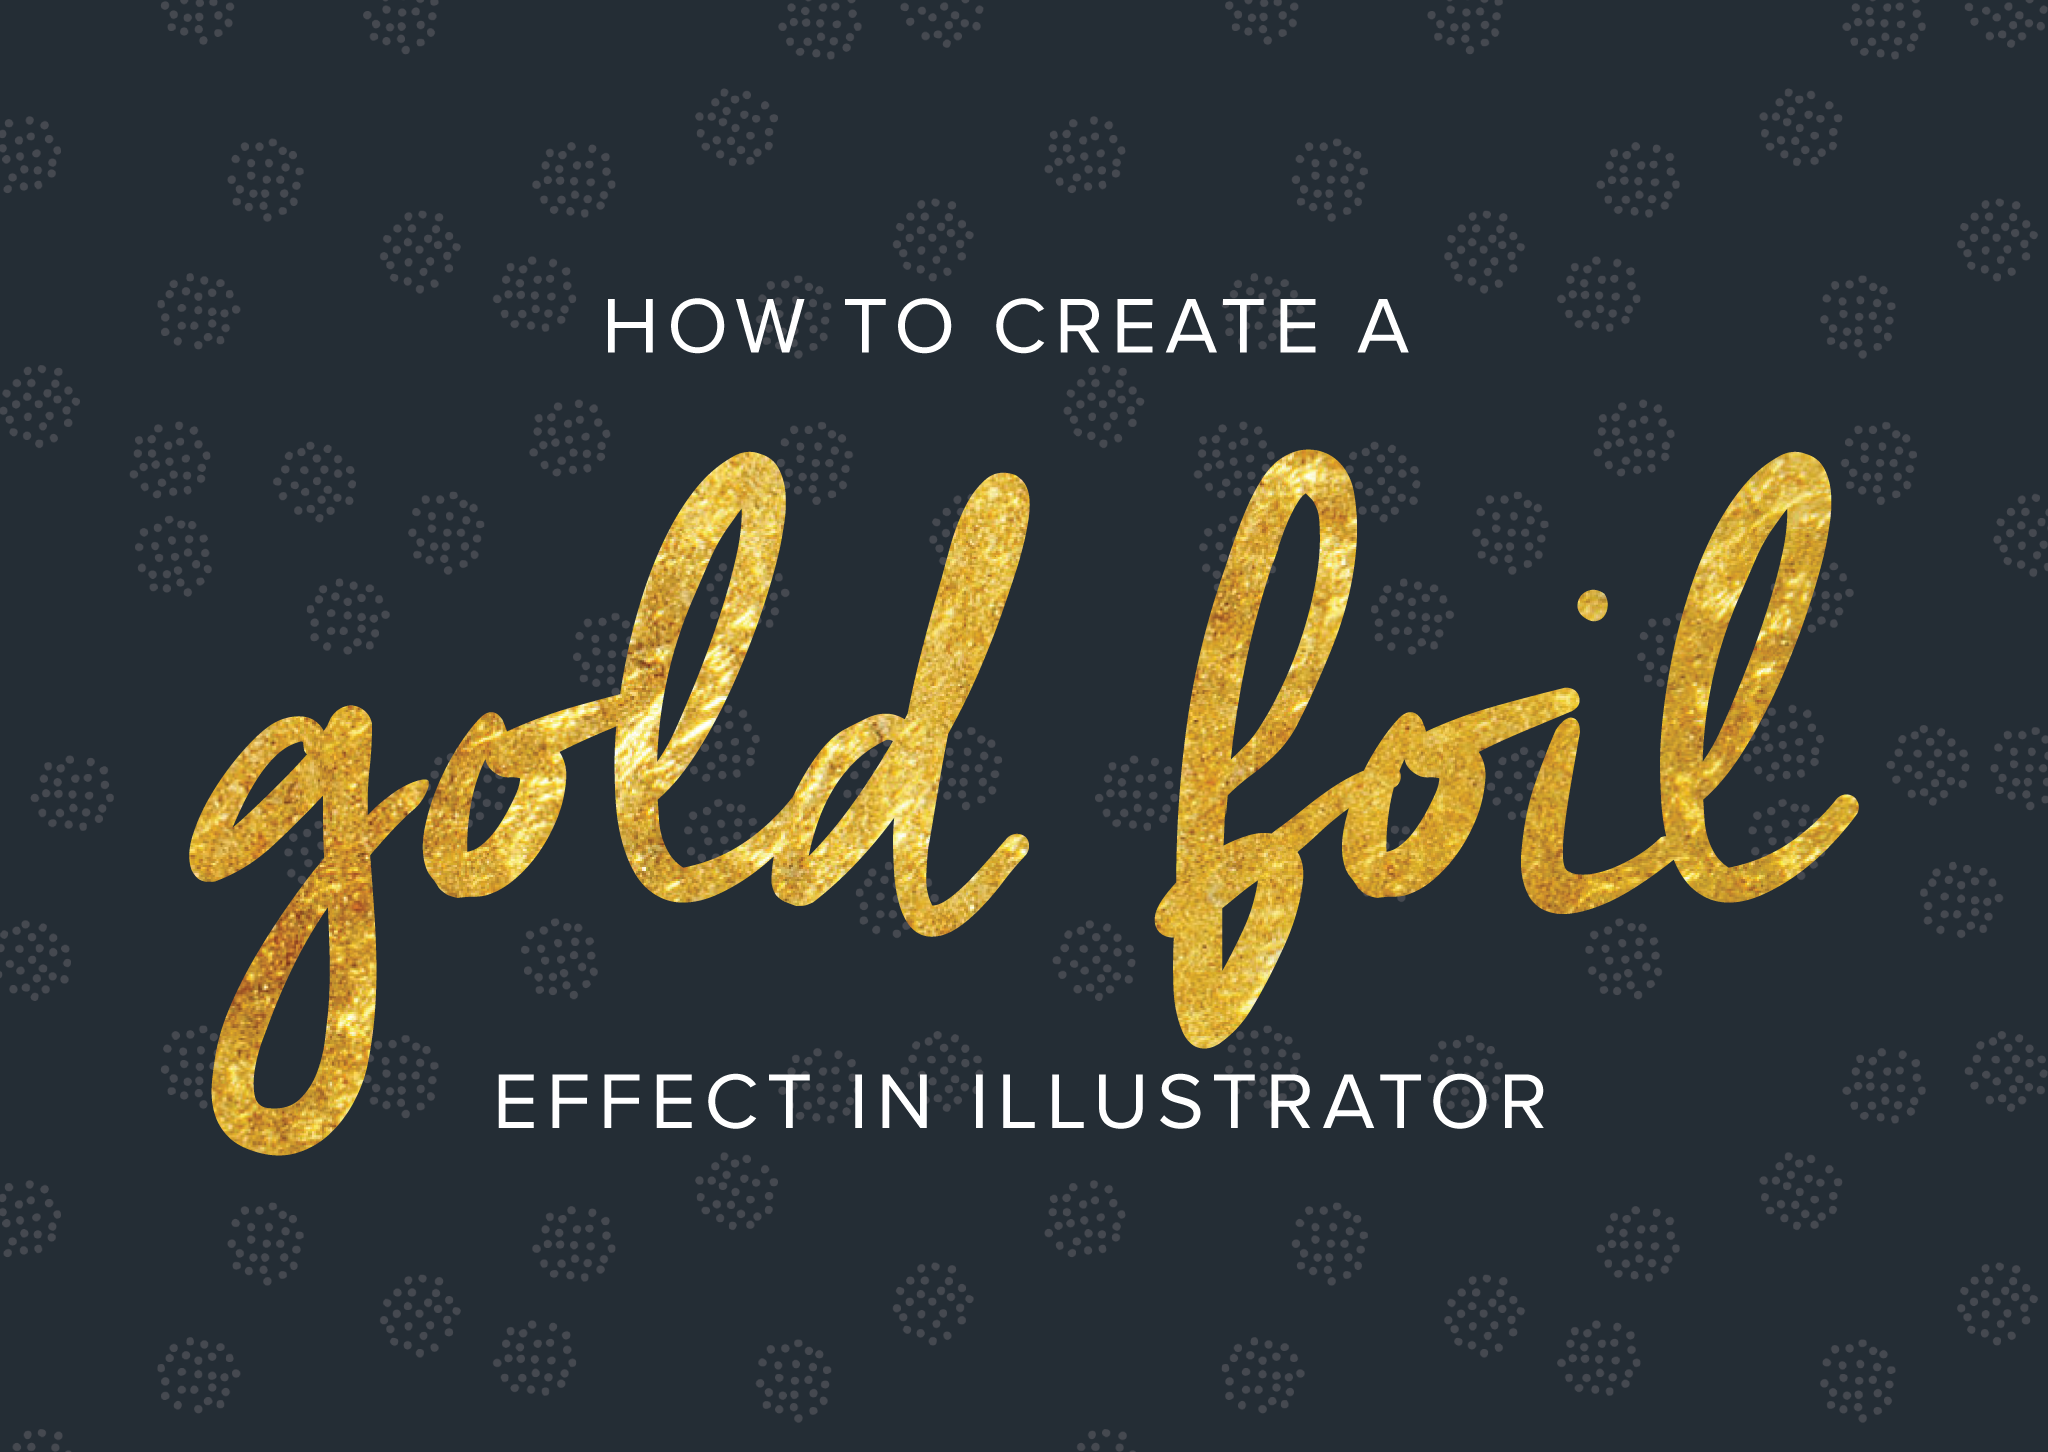 How To Create A Gold Foil Text Effect In Illustrator Sparrow Design Haus Http Spar Graphic Design Tips Graphic Design Tutorials Graphic Design Inspiration